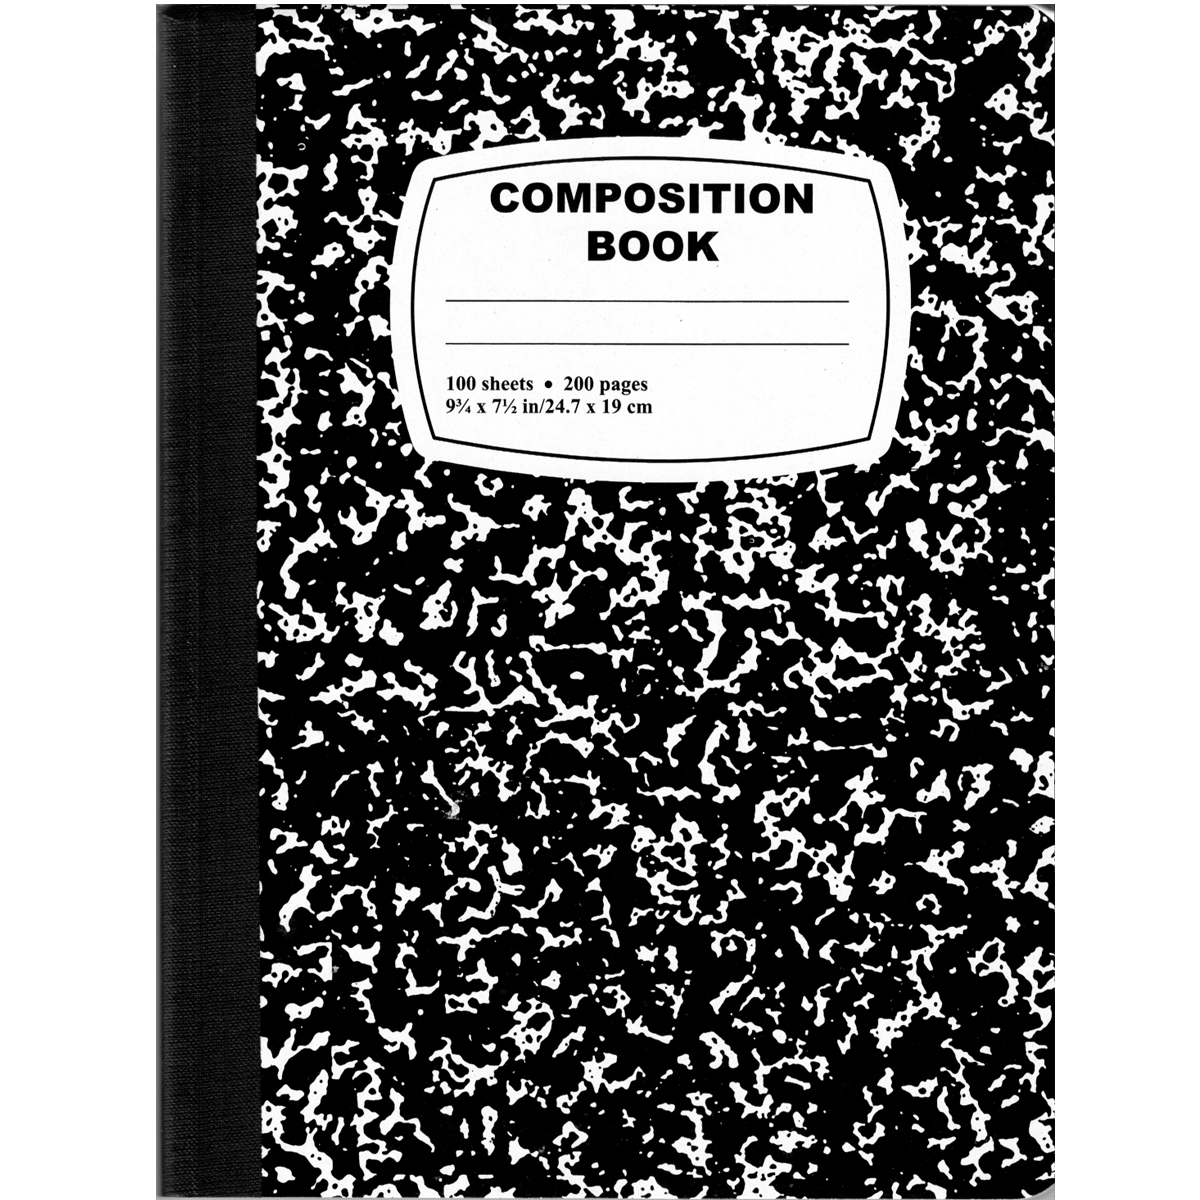 Computer Programming custom composition book